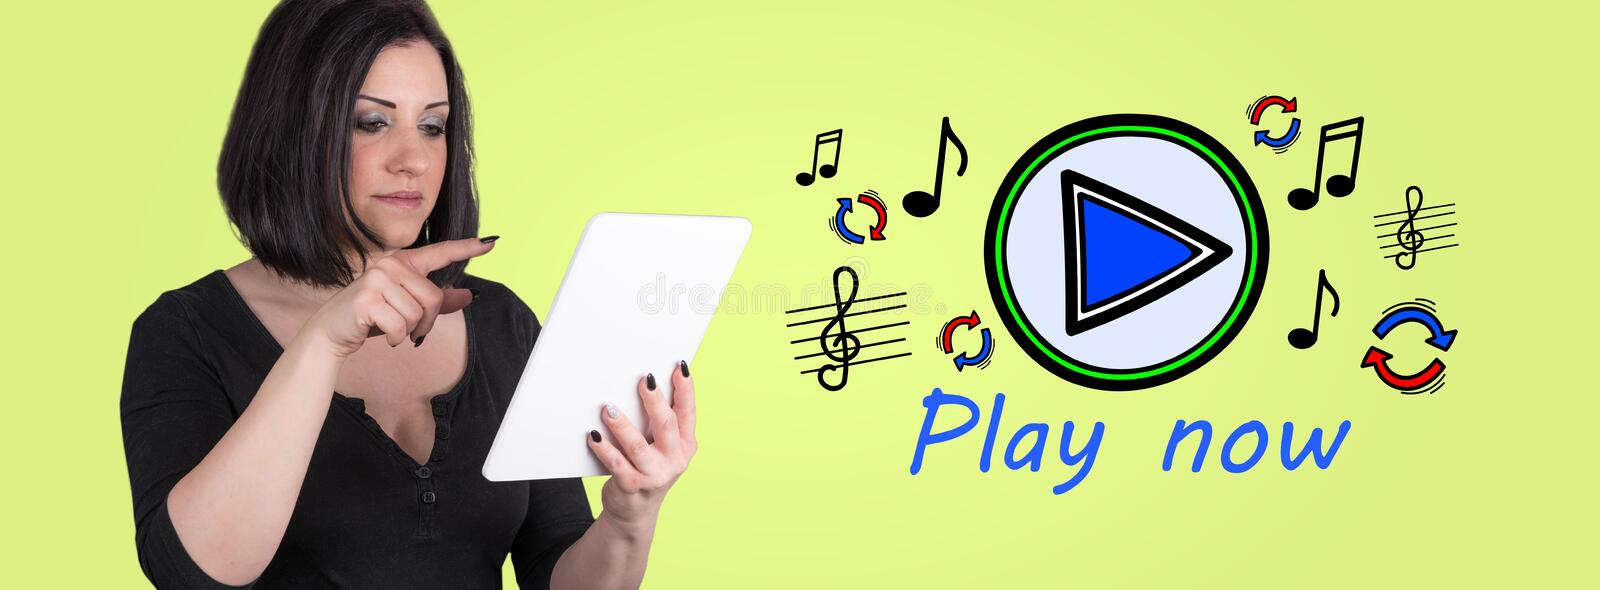 Concept of online music stock image